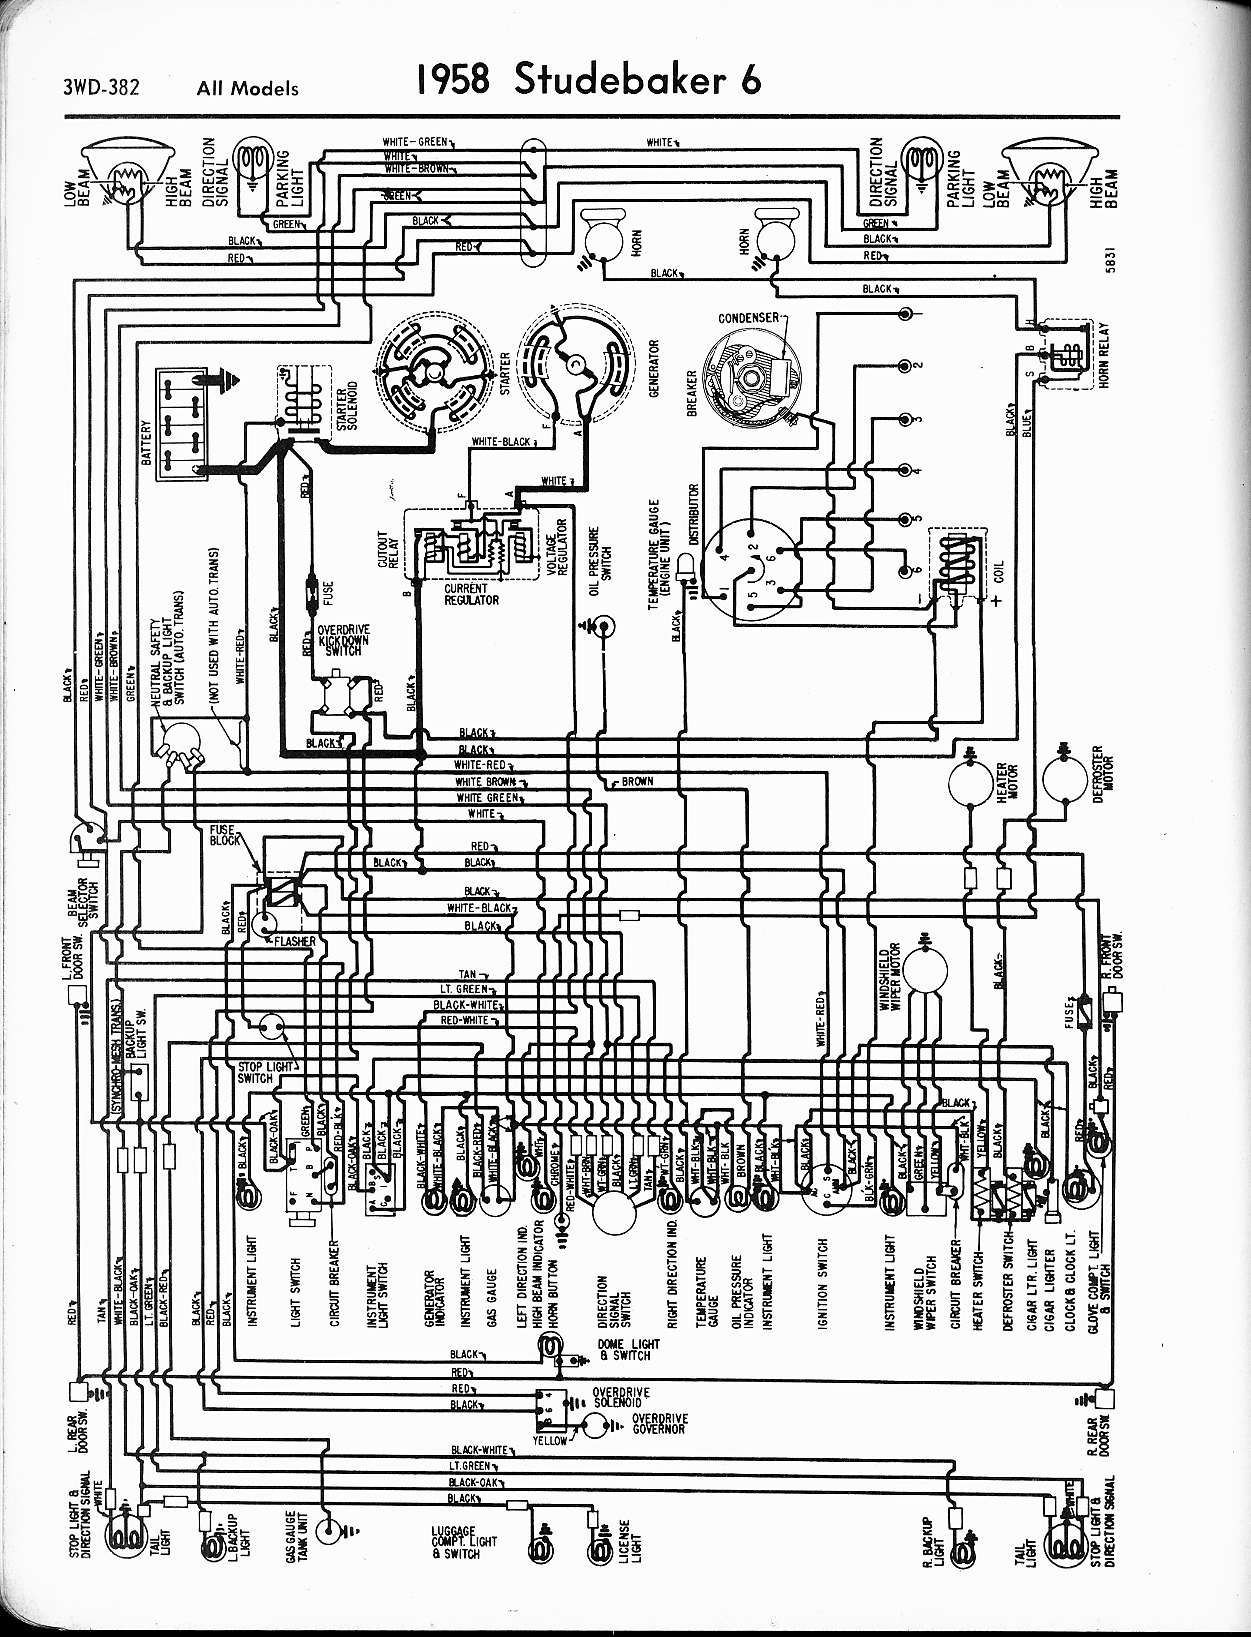 1950 studebaker wiring harness 30 wiring diagram images 1959 Studebaker Pickup Wiring Diagrams 04 Mazda 6 2.3L Wiring-Diagram